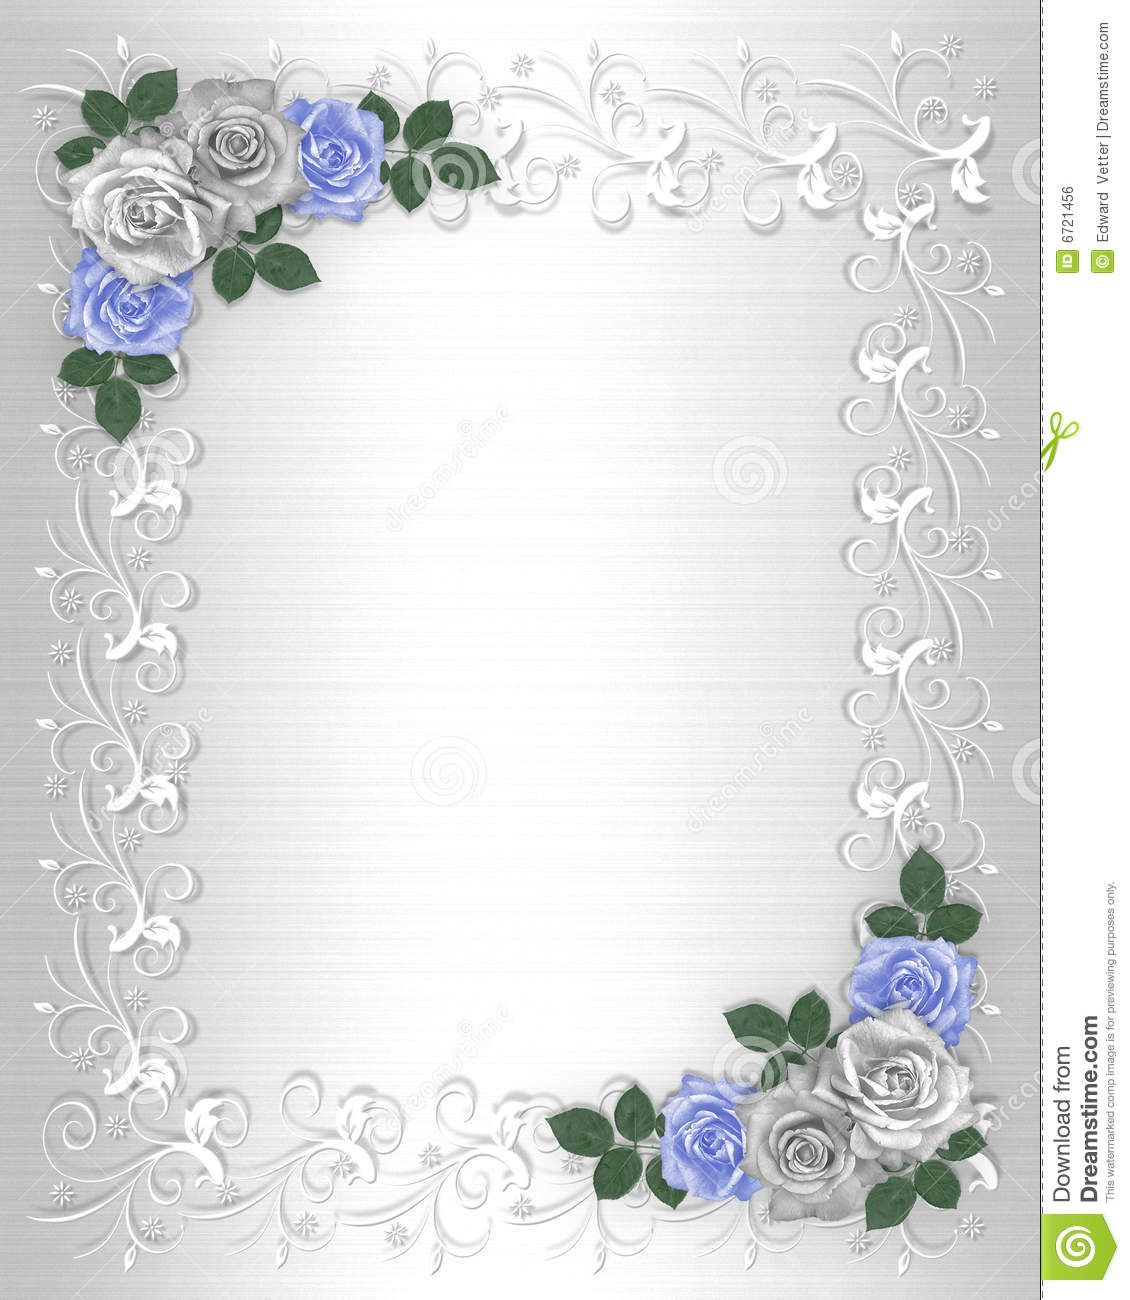 Background Wedding Border Design | Wedding Invitation Border White ...